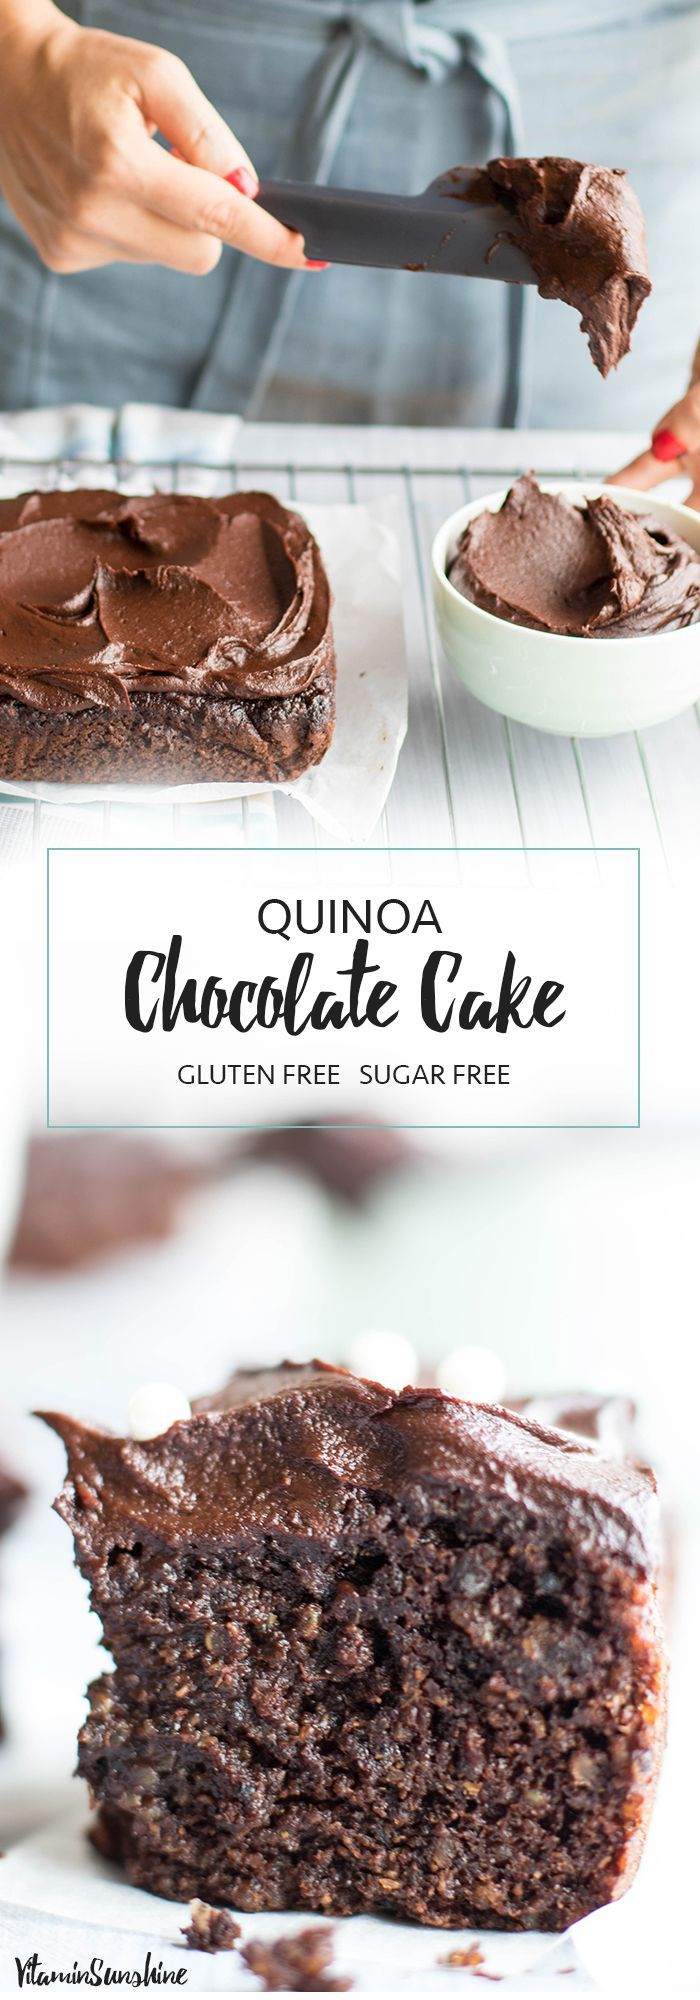 Chocolate Quinoa Cake / This healthy chocolate snack cake is made with quinoa and sweetened entirely with fruit! | https://lomejordelaweb.es/